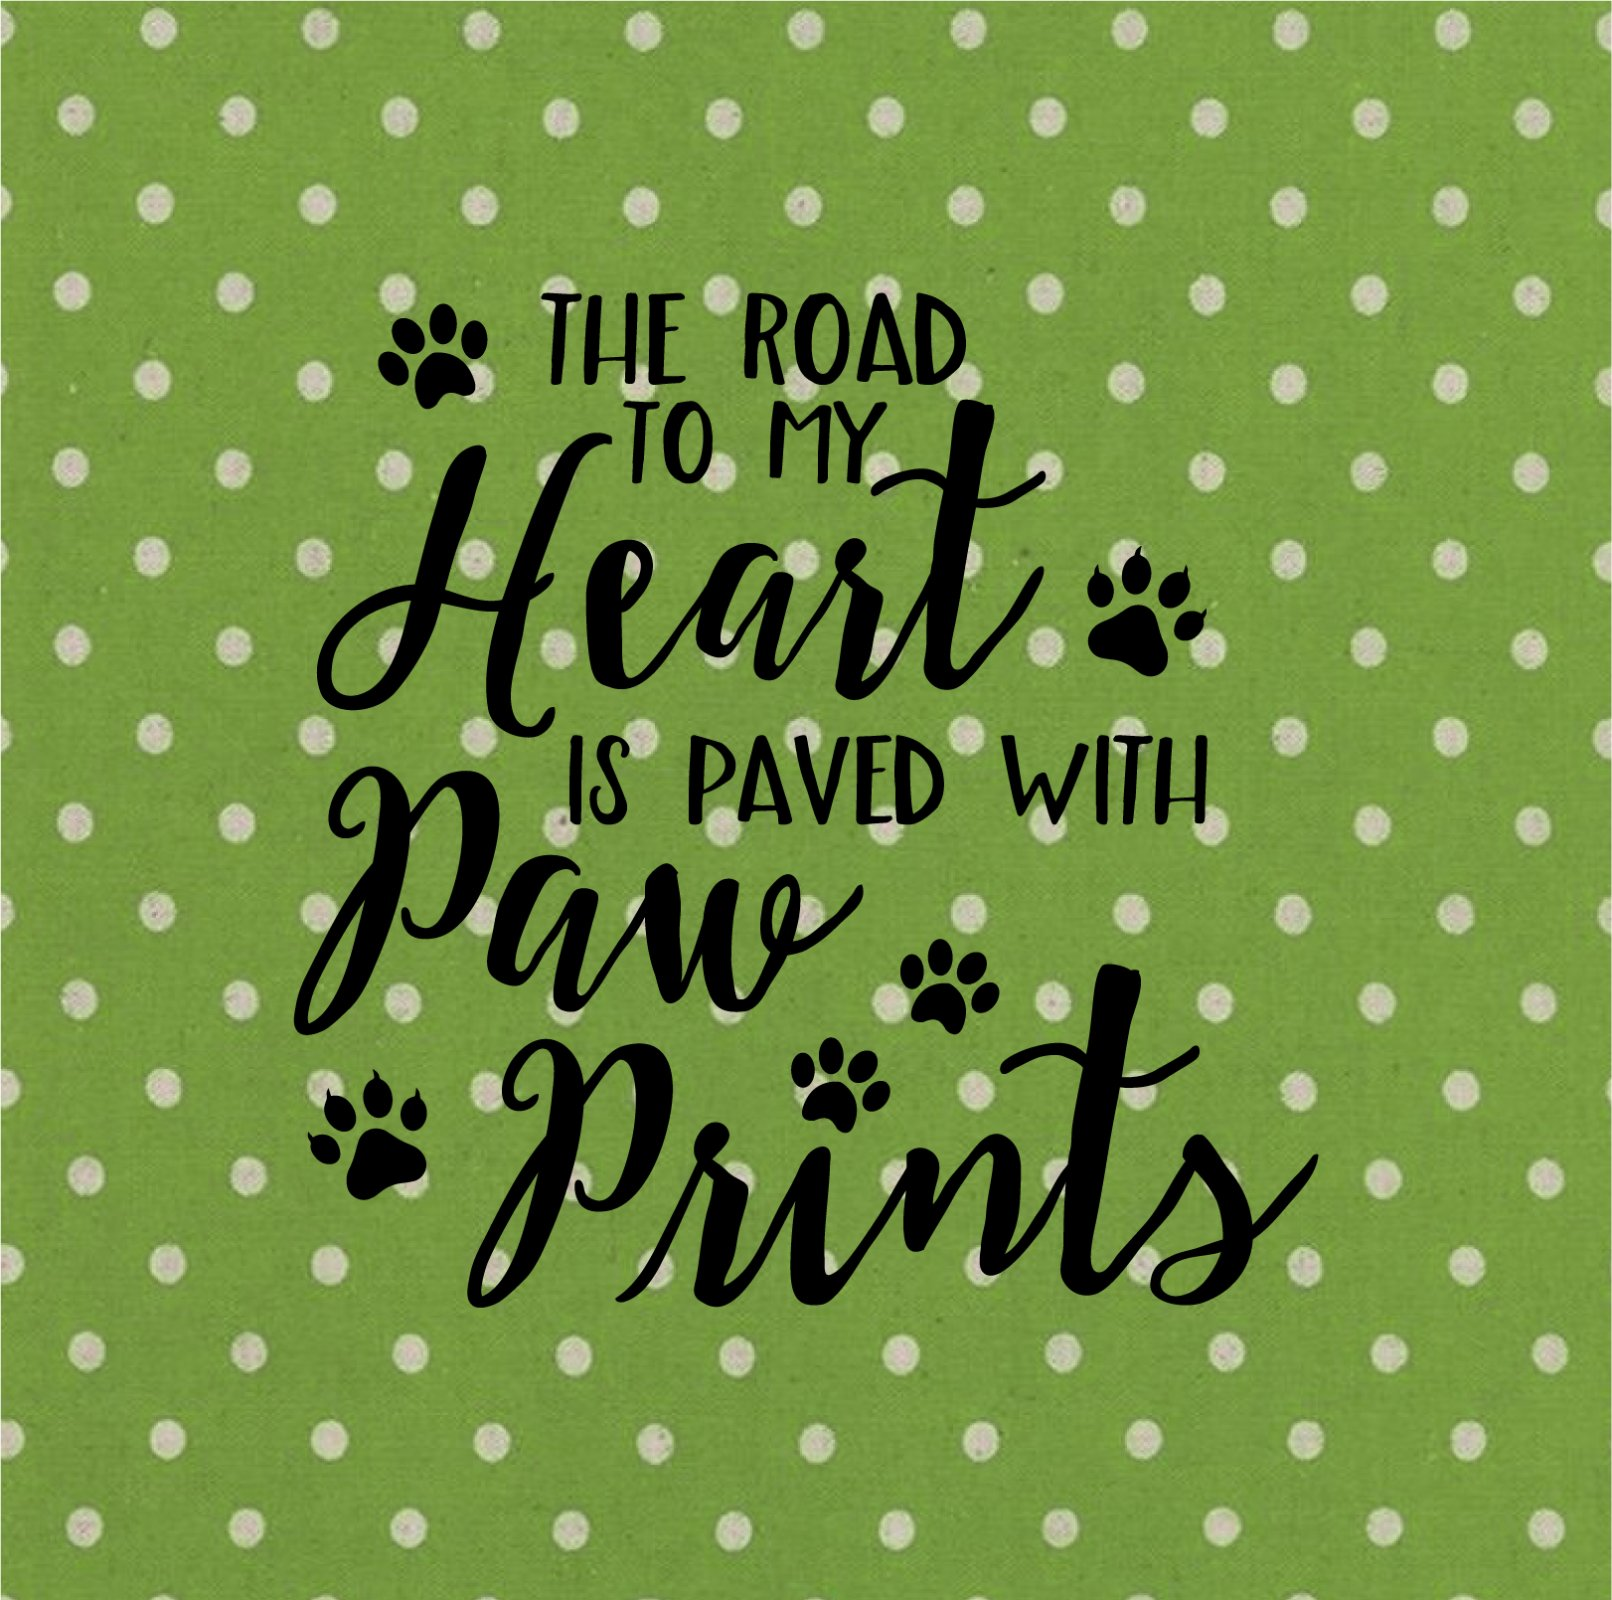 The Road To My Heart Screen Printed Panel